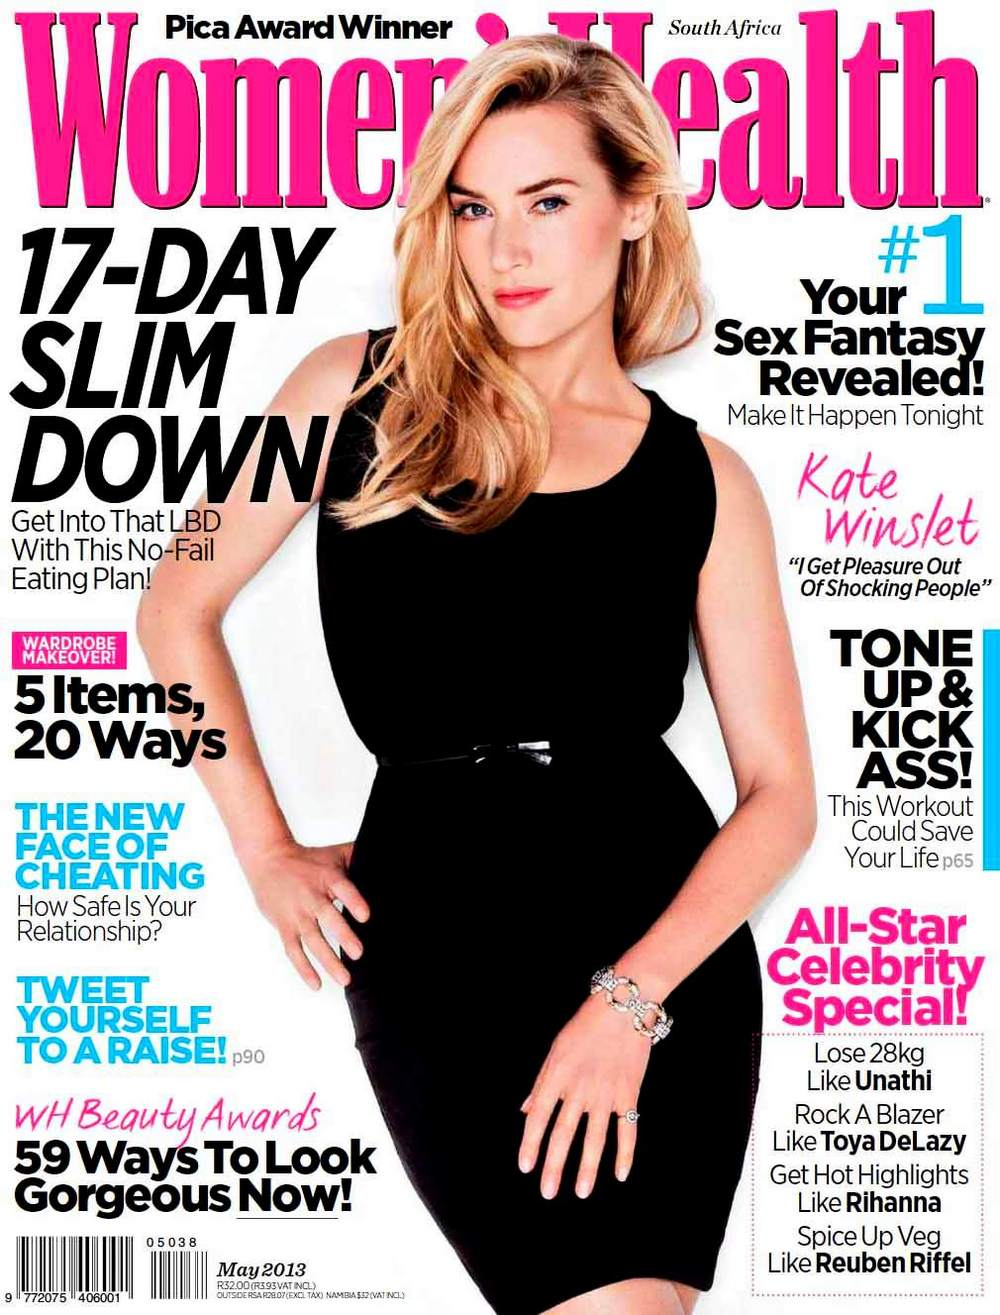 Kate Winslet magazines covers - South Africa Women's health, May 2013